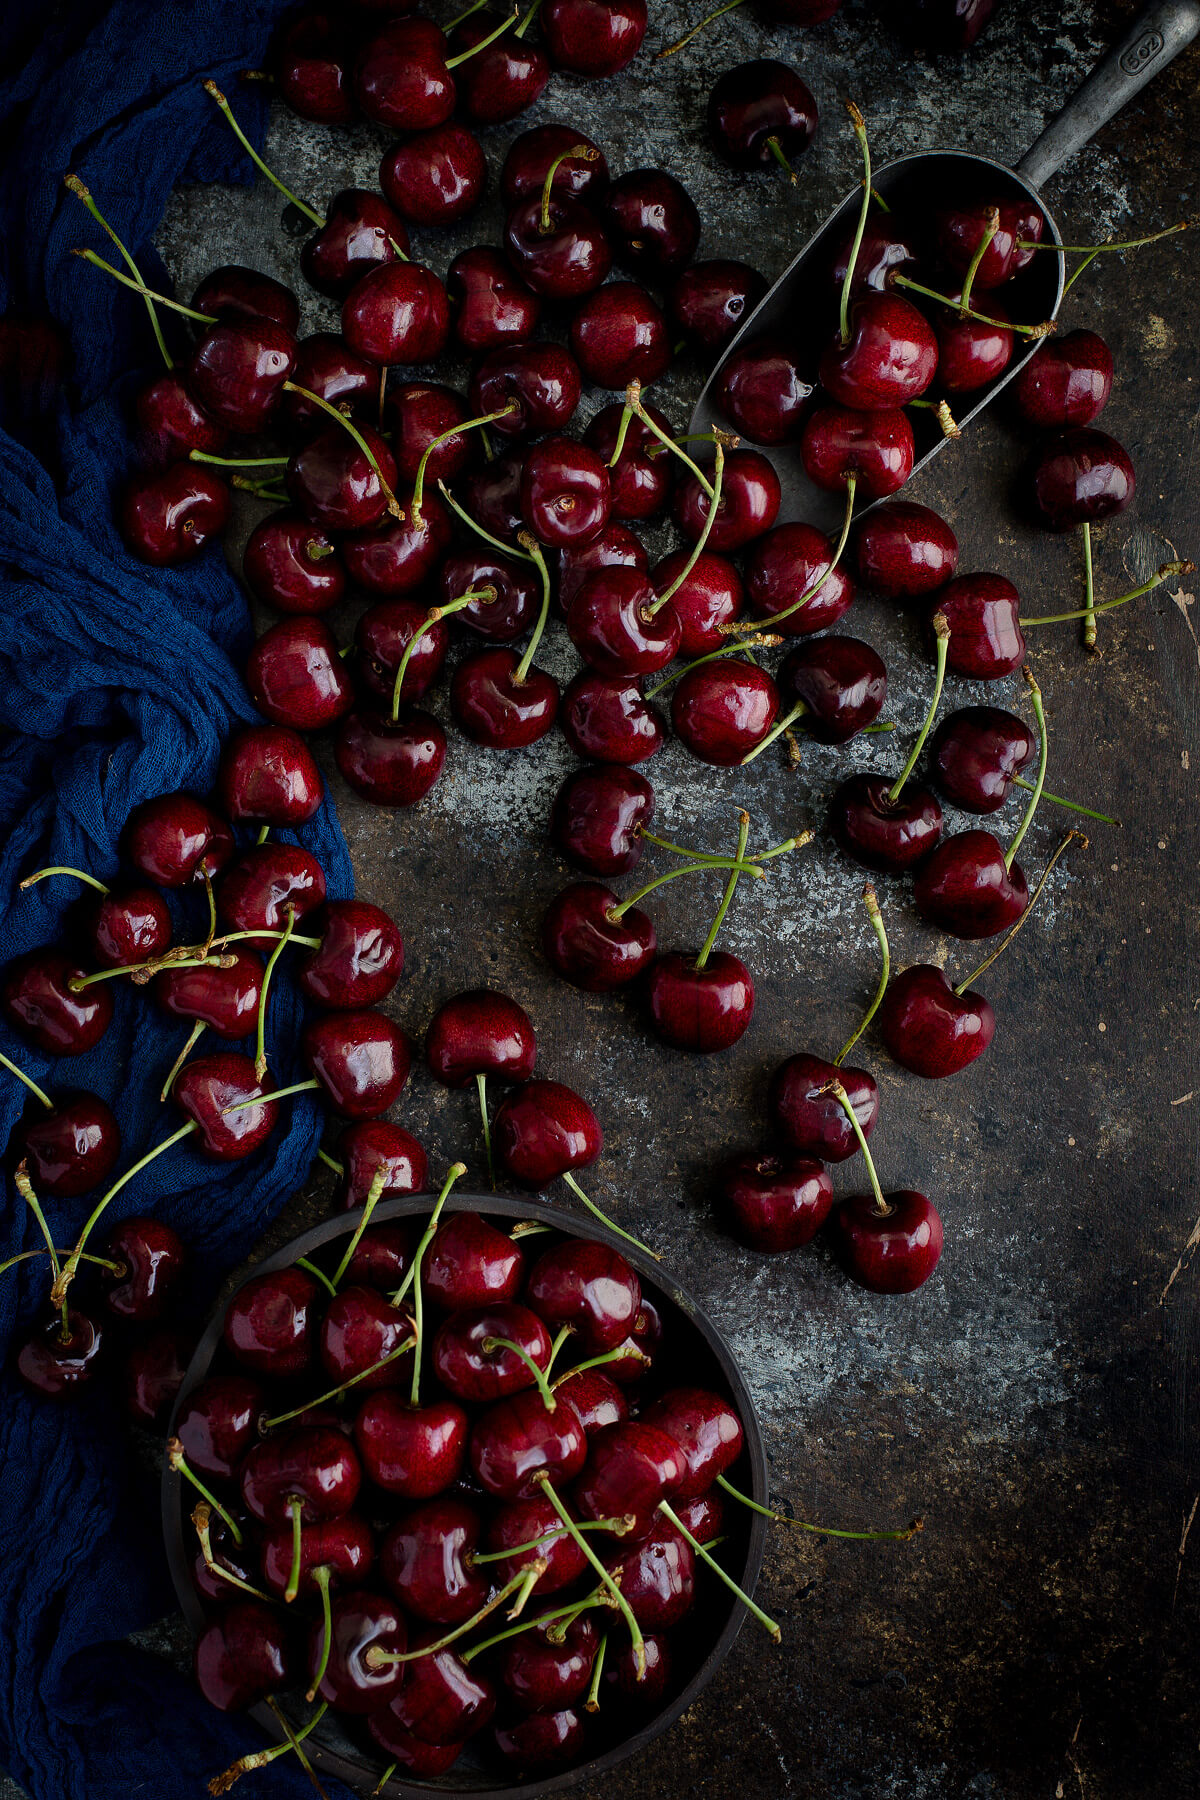 Fresh cherries scattered on a wooden board.